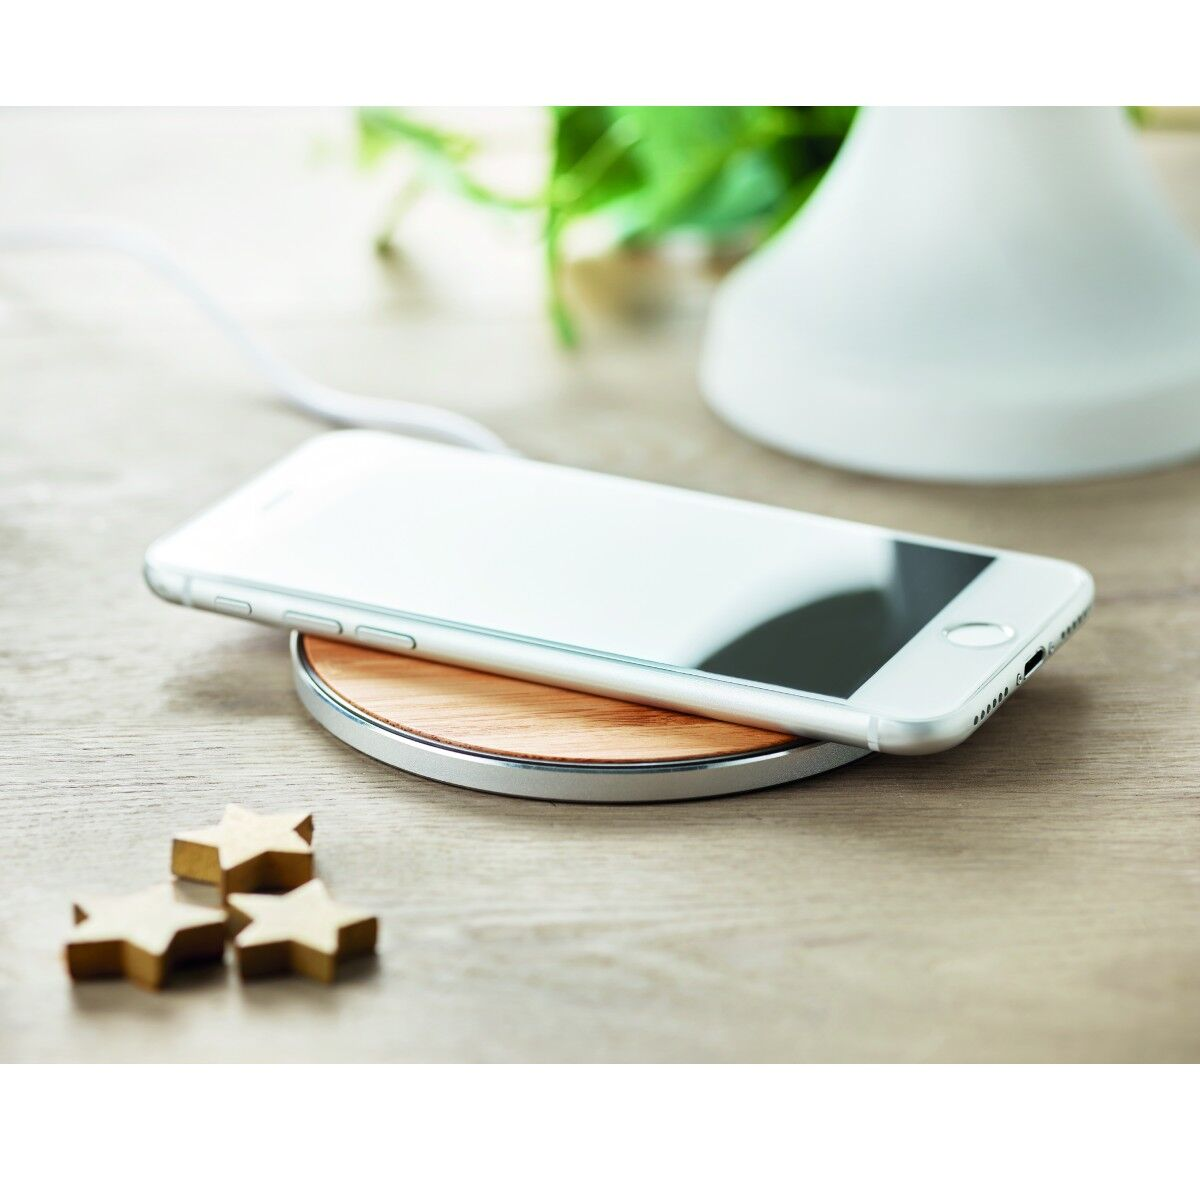 Wireless Fast Charger pad in Bamboo